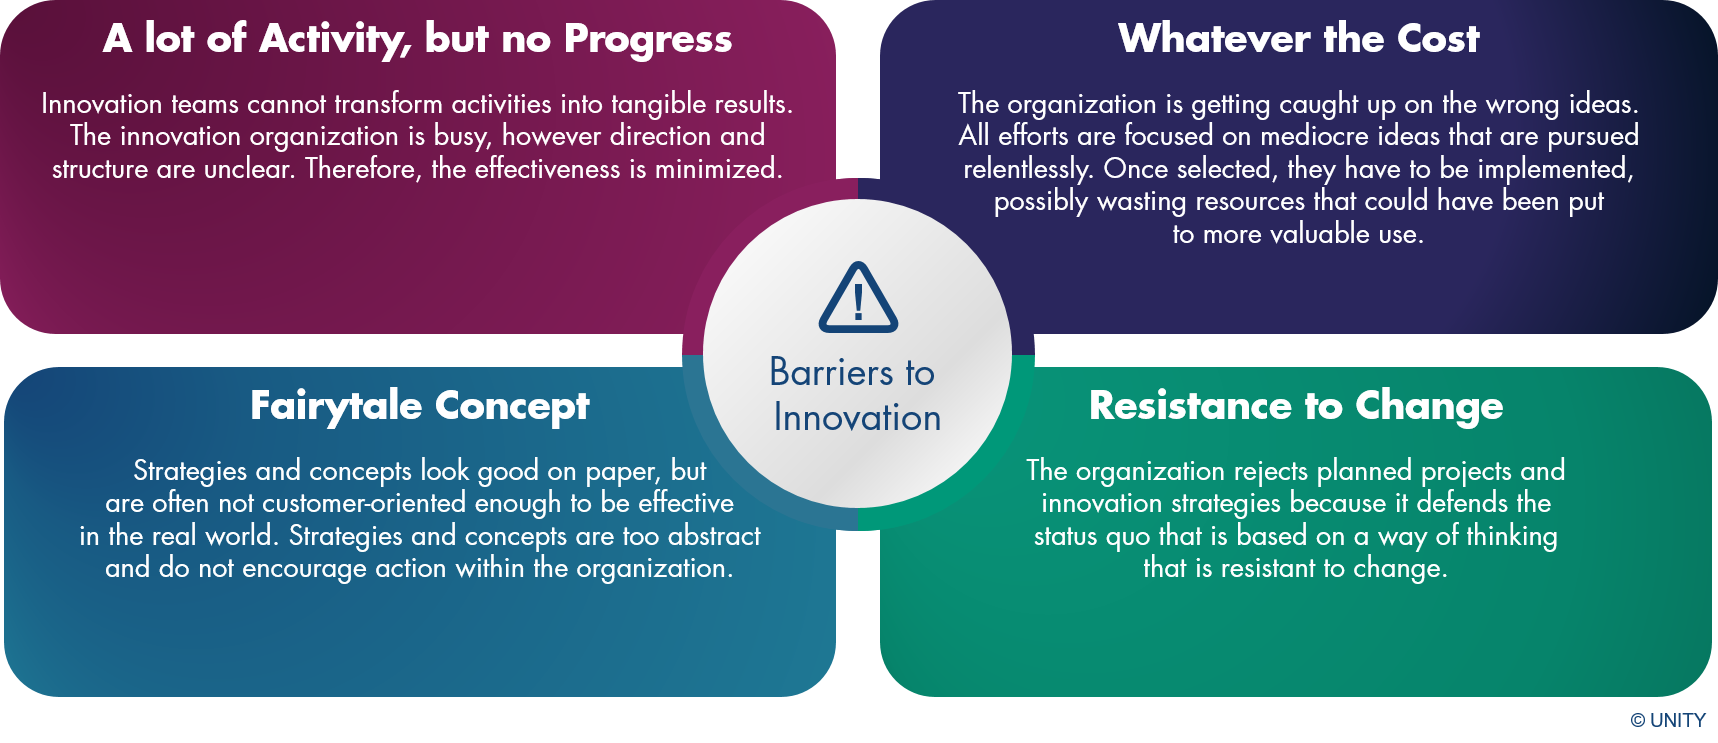 The graphic provides information about classic obstacles in companies that prevent or slow down powerful innovations. With our help, you will overcome these barriers.